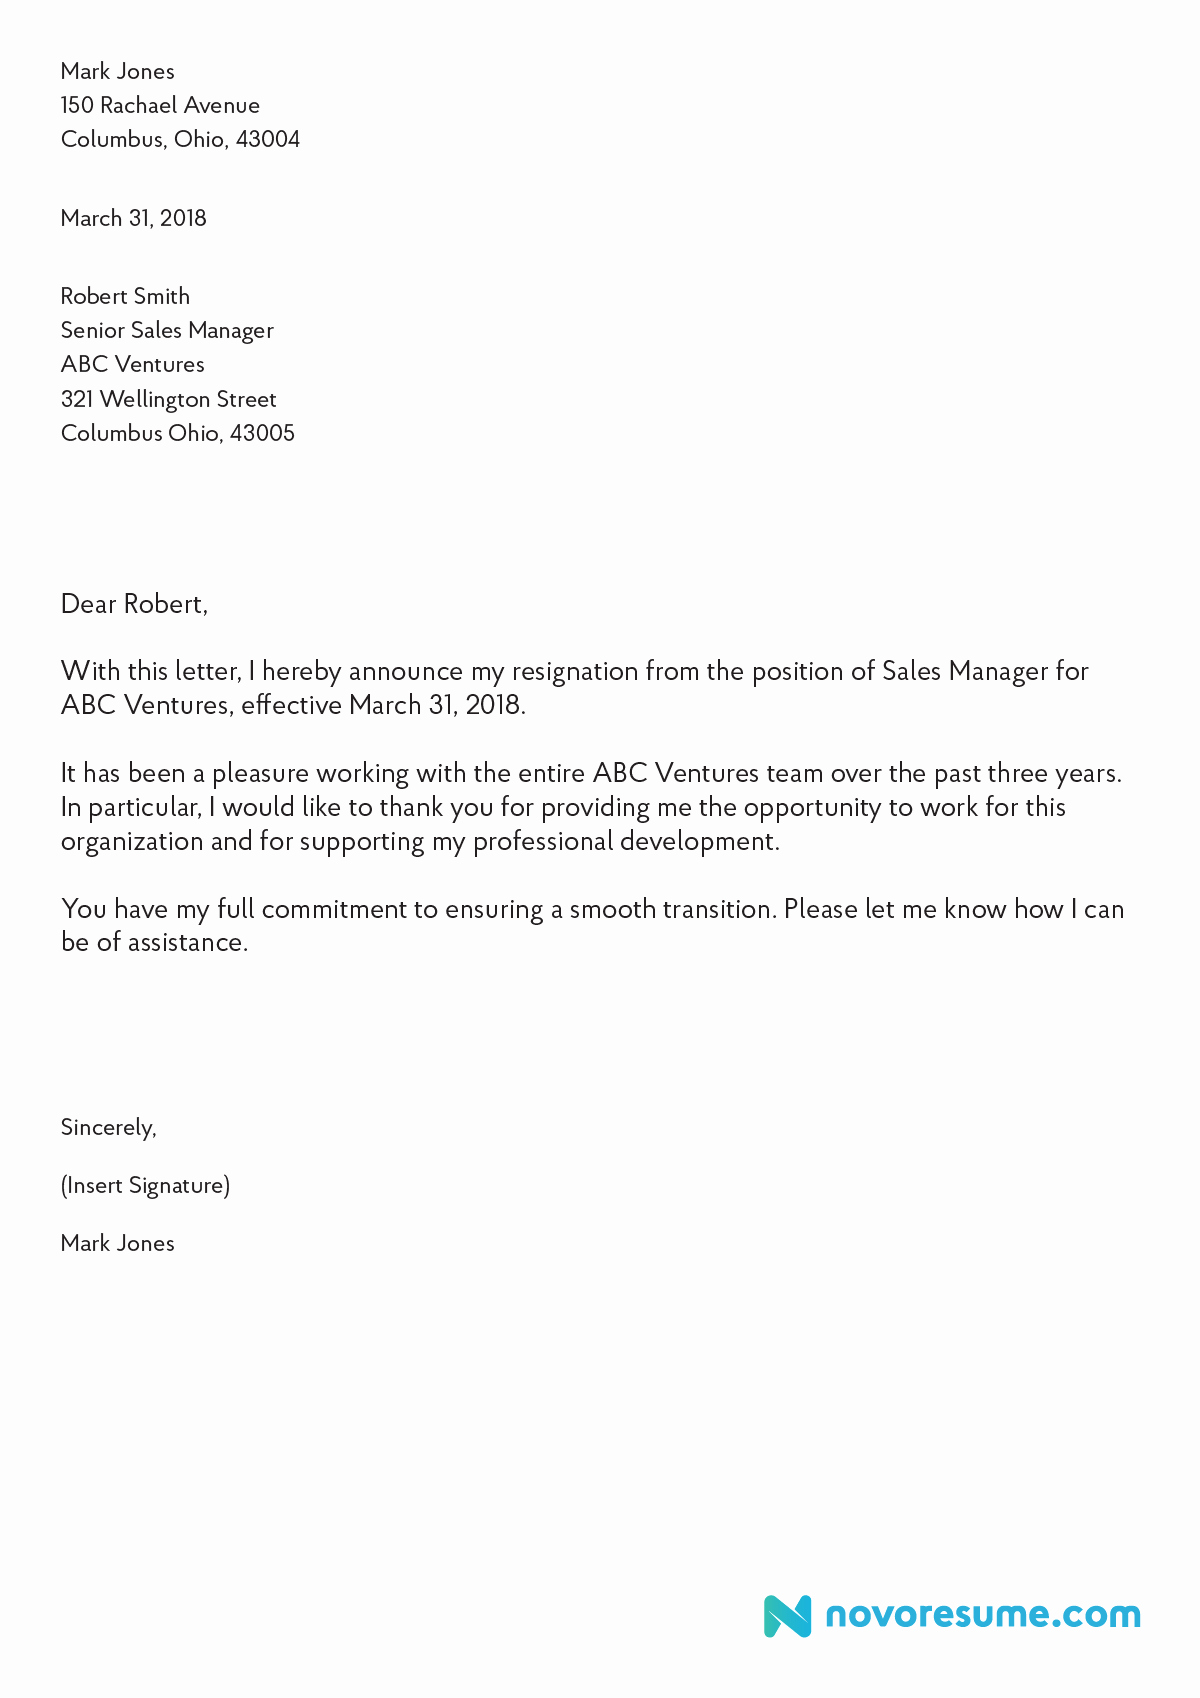 Professional Letter Of Resignation Fresh How to Write A Letter Of Resignation – 2019 Extensive Guide